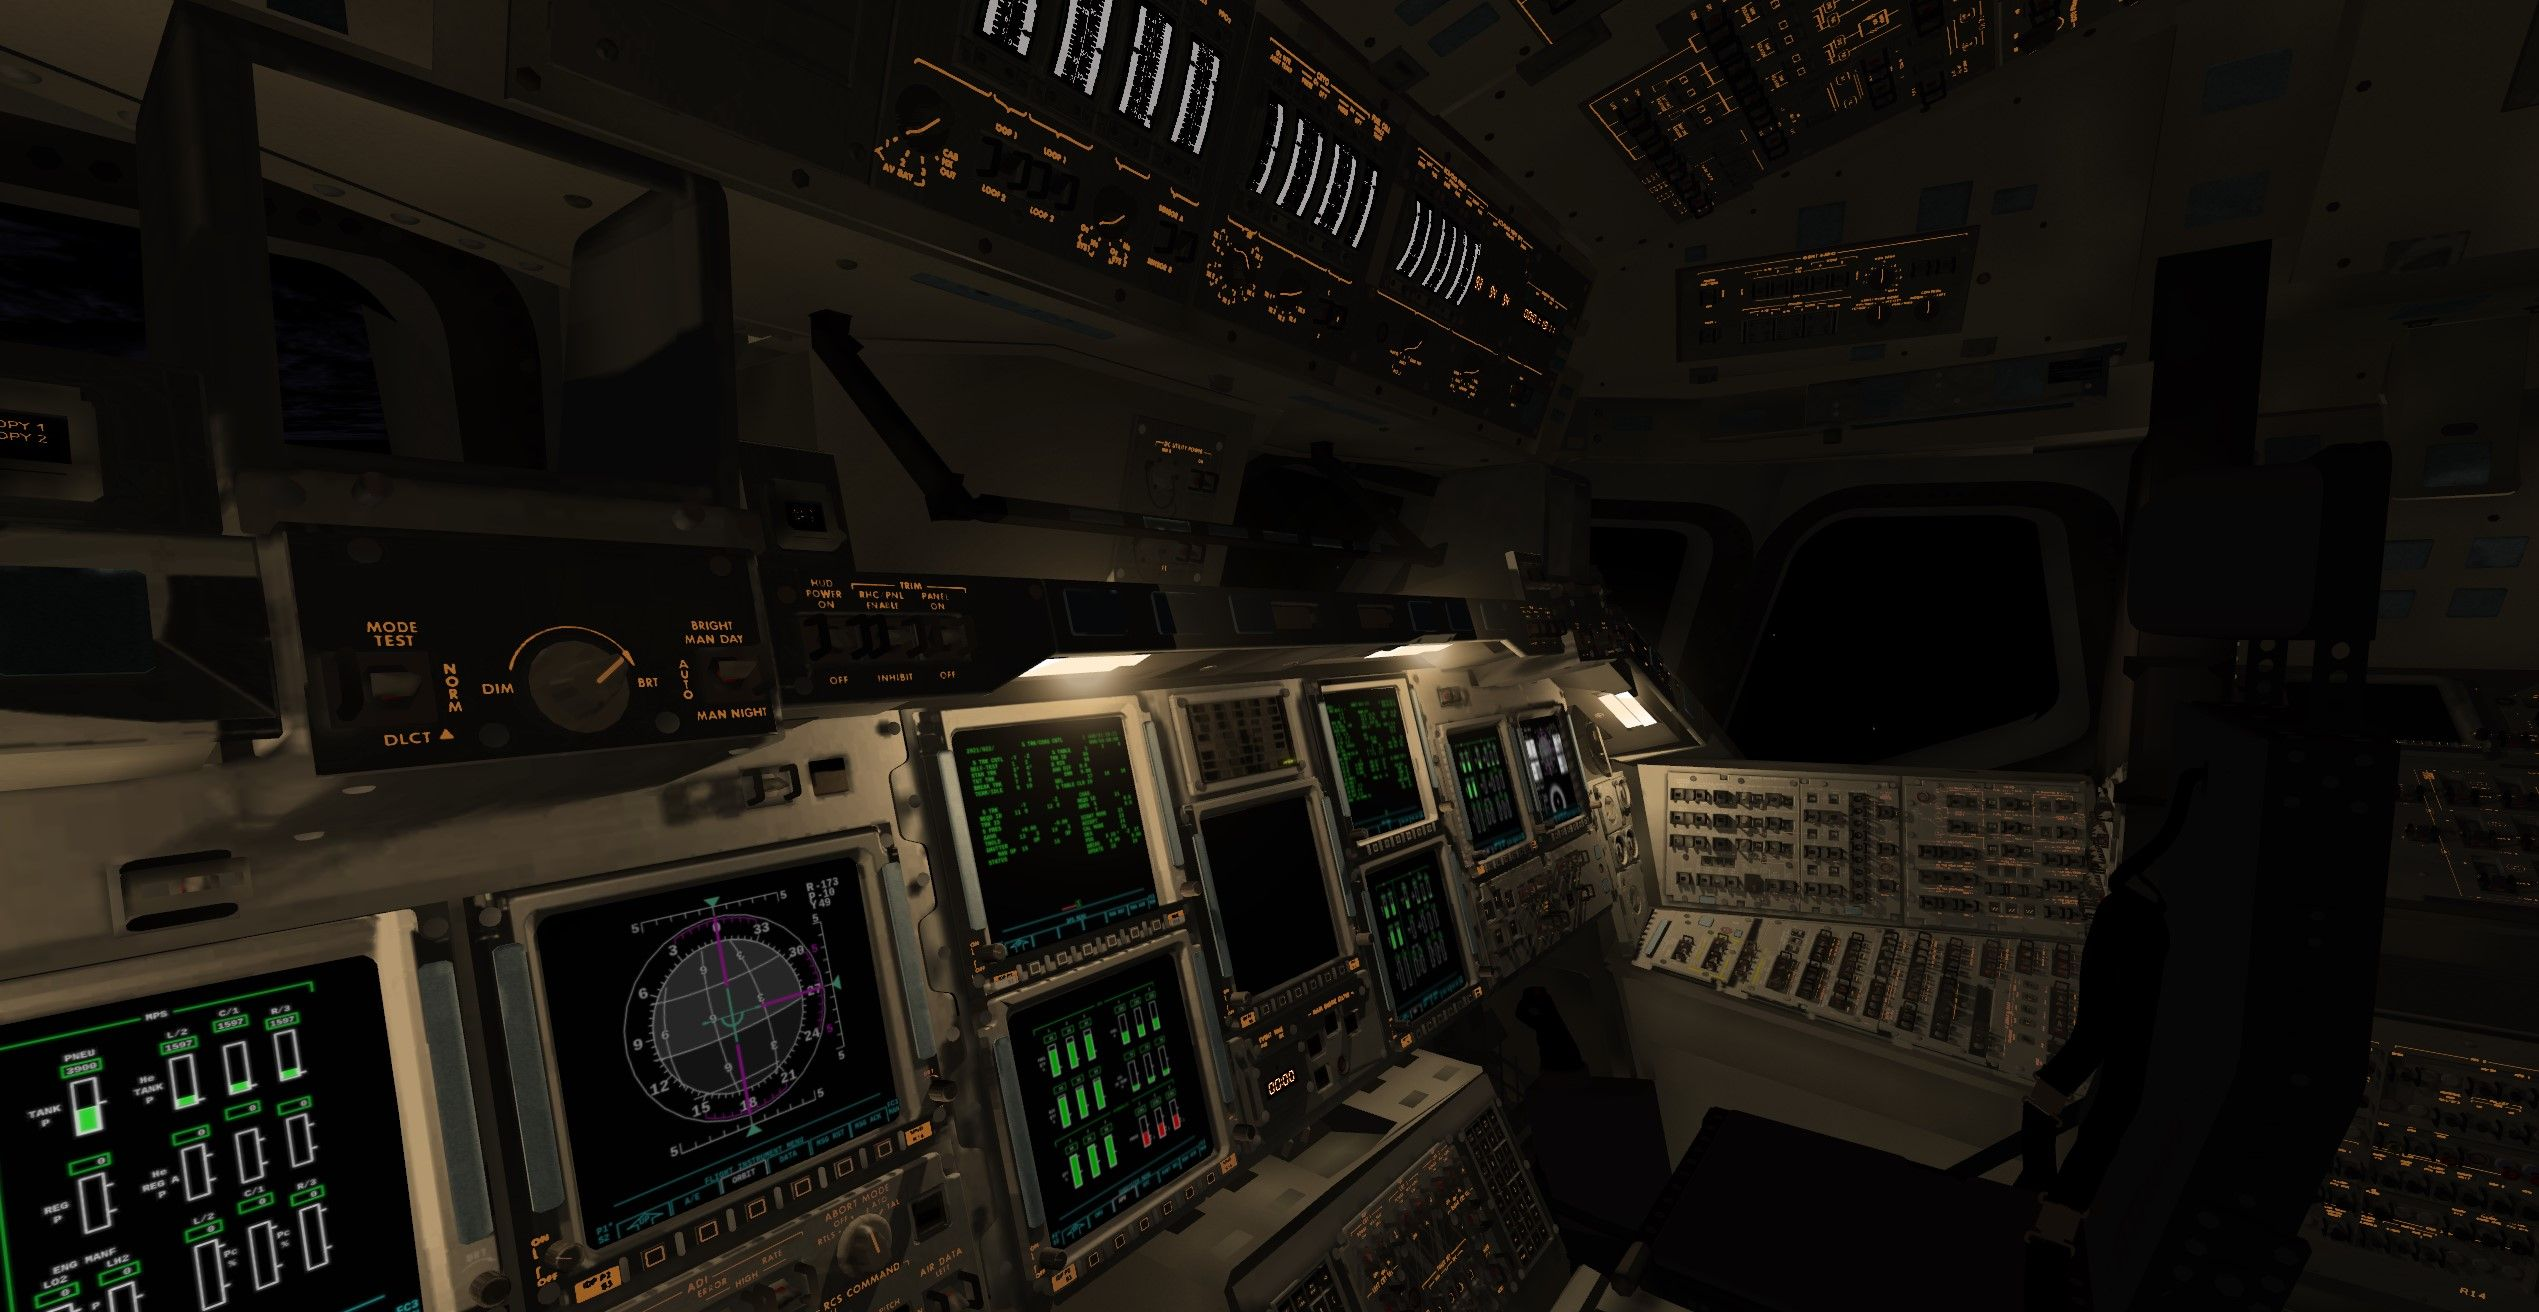 FlightGear forum • View topic - Meet me up there: From Ground to ISS